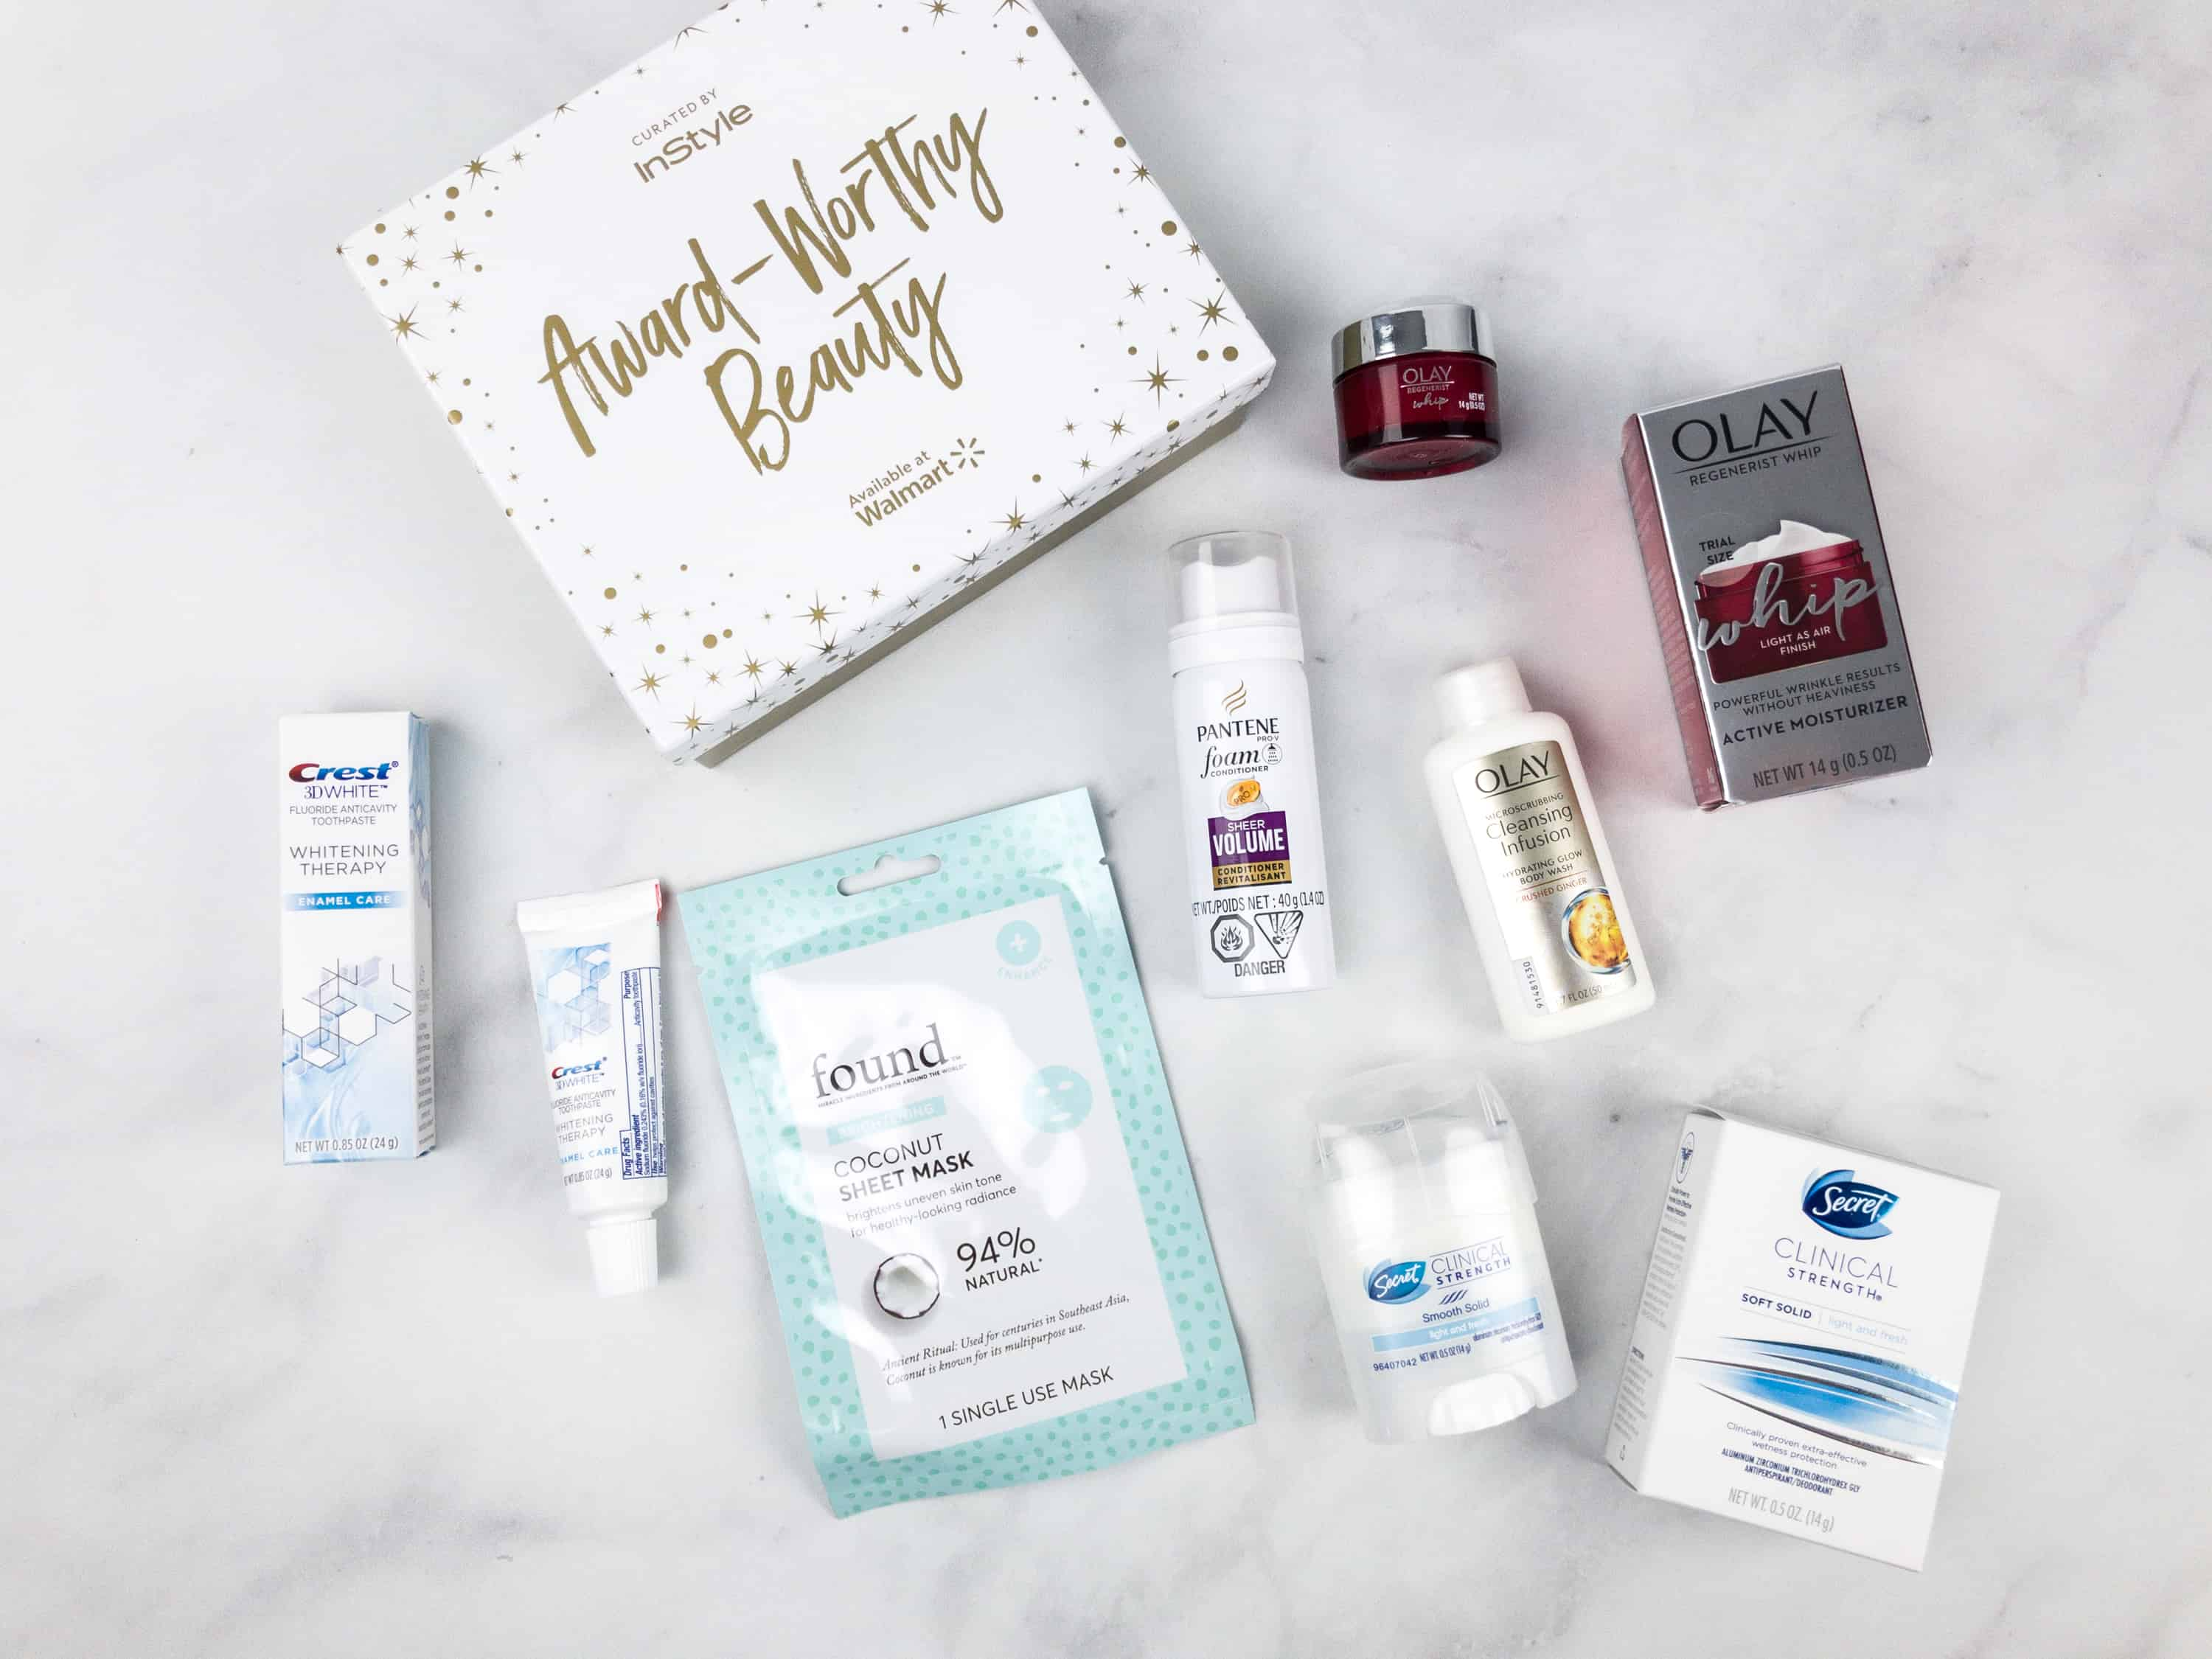 Walmart Beauty Box x InStyle Award-Worthy Limited Edition Box Review